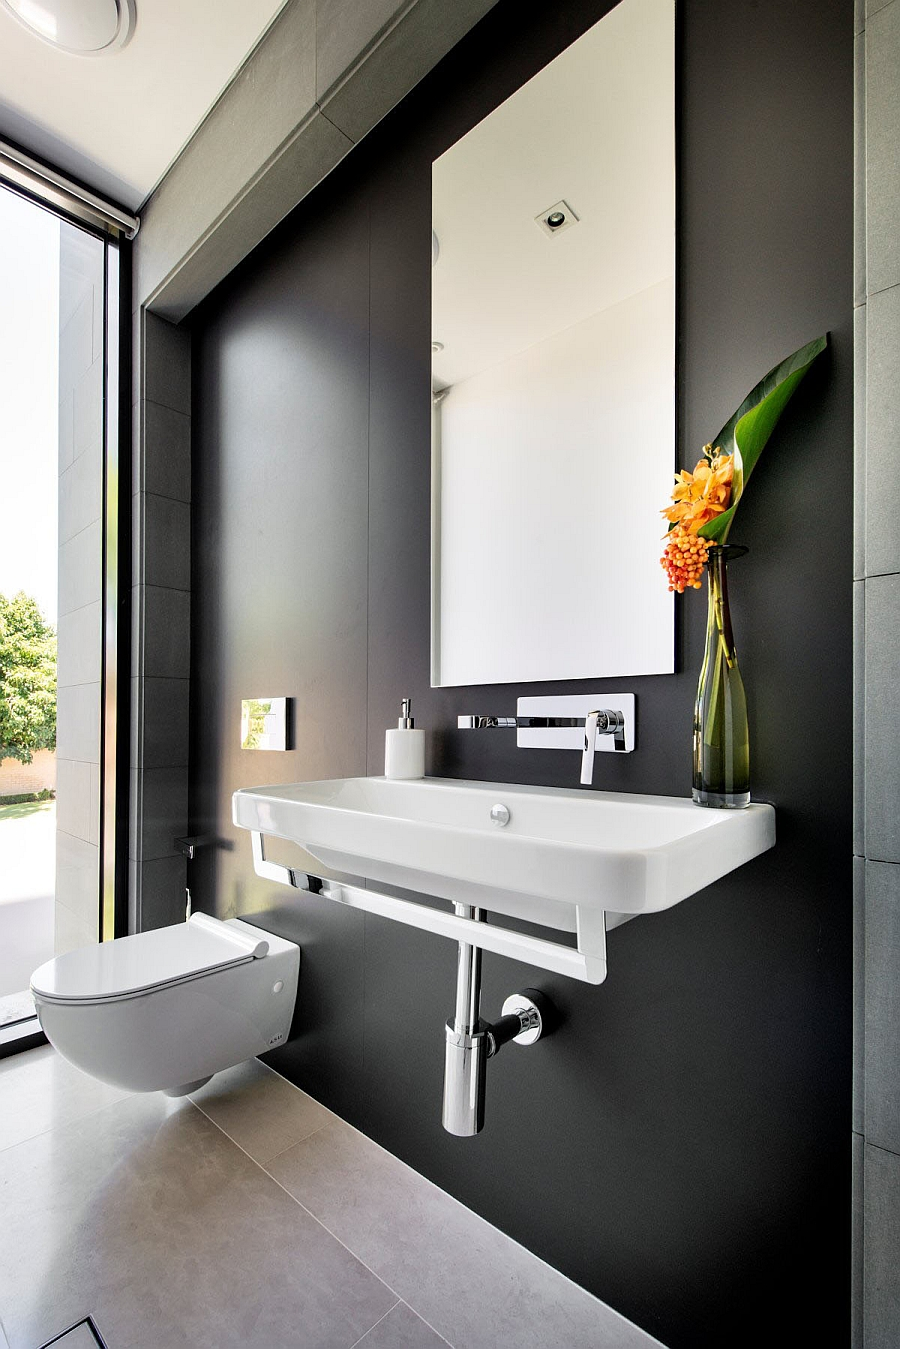 Wall-mounted WC that saves up on space in a small bathroom